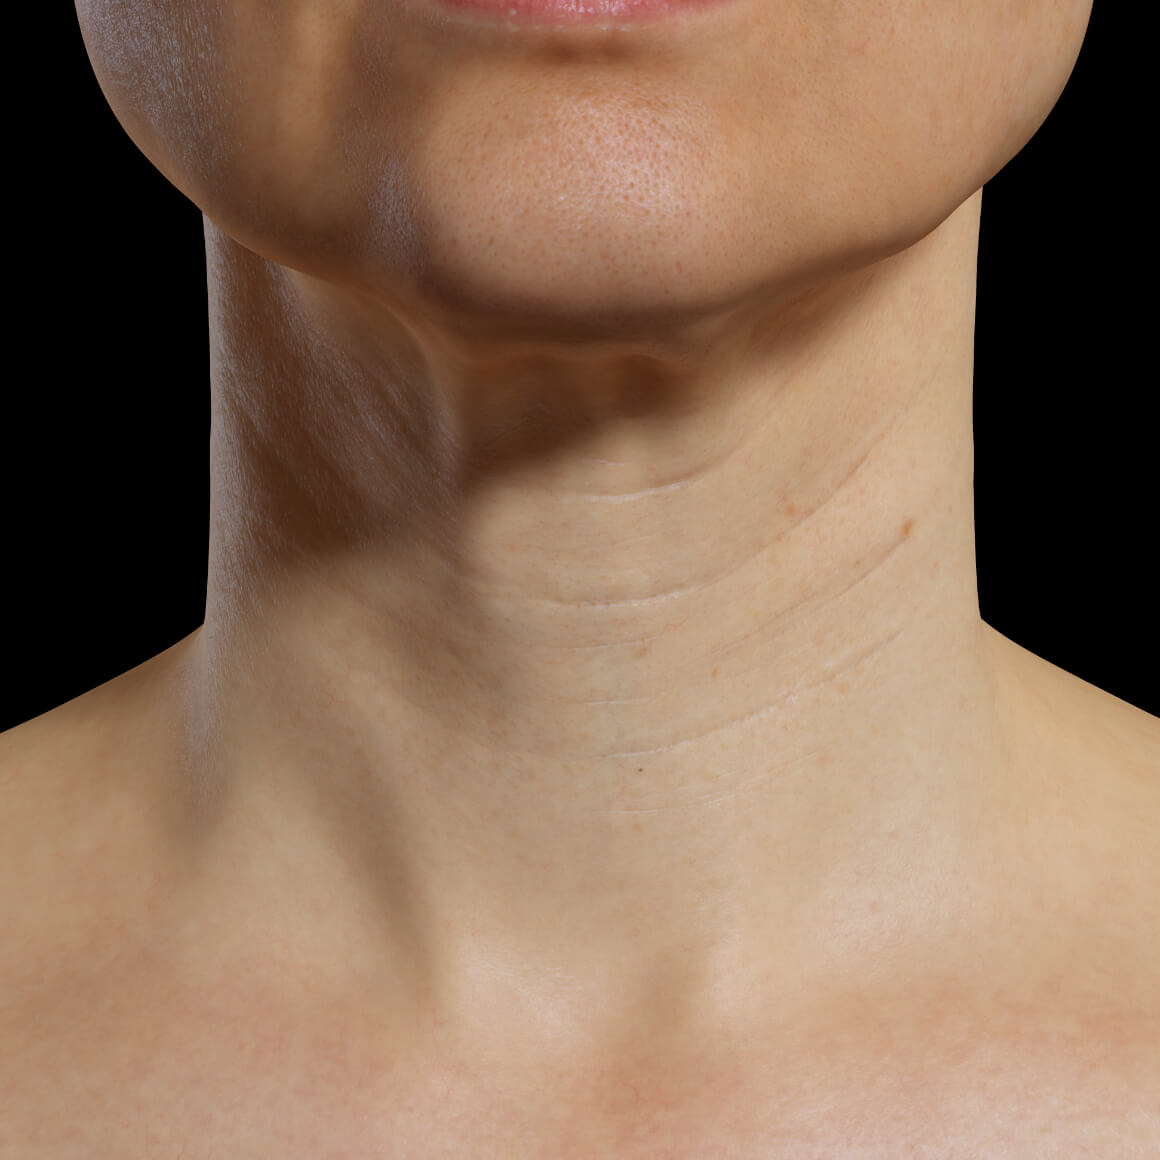 A female patient at Clinique Chloé facing front showing fine lines and wrinkles in the neck